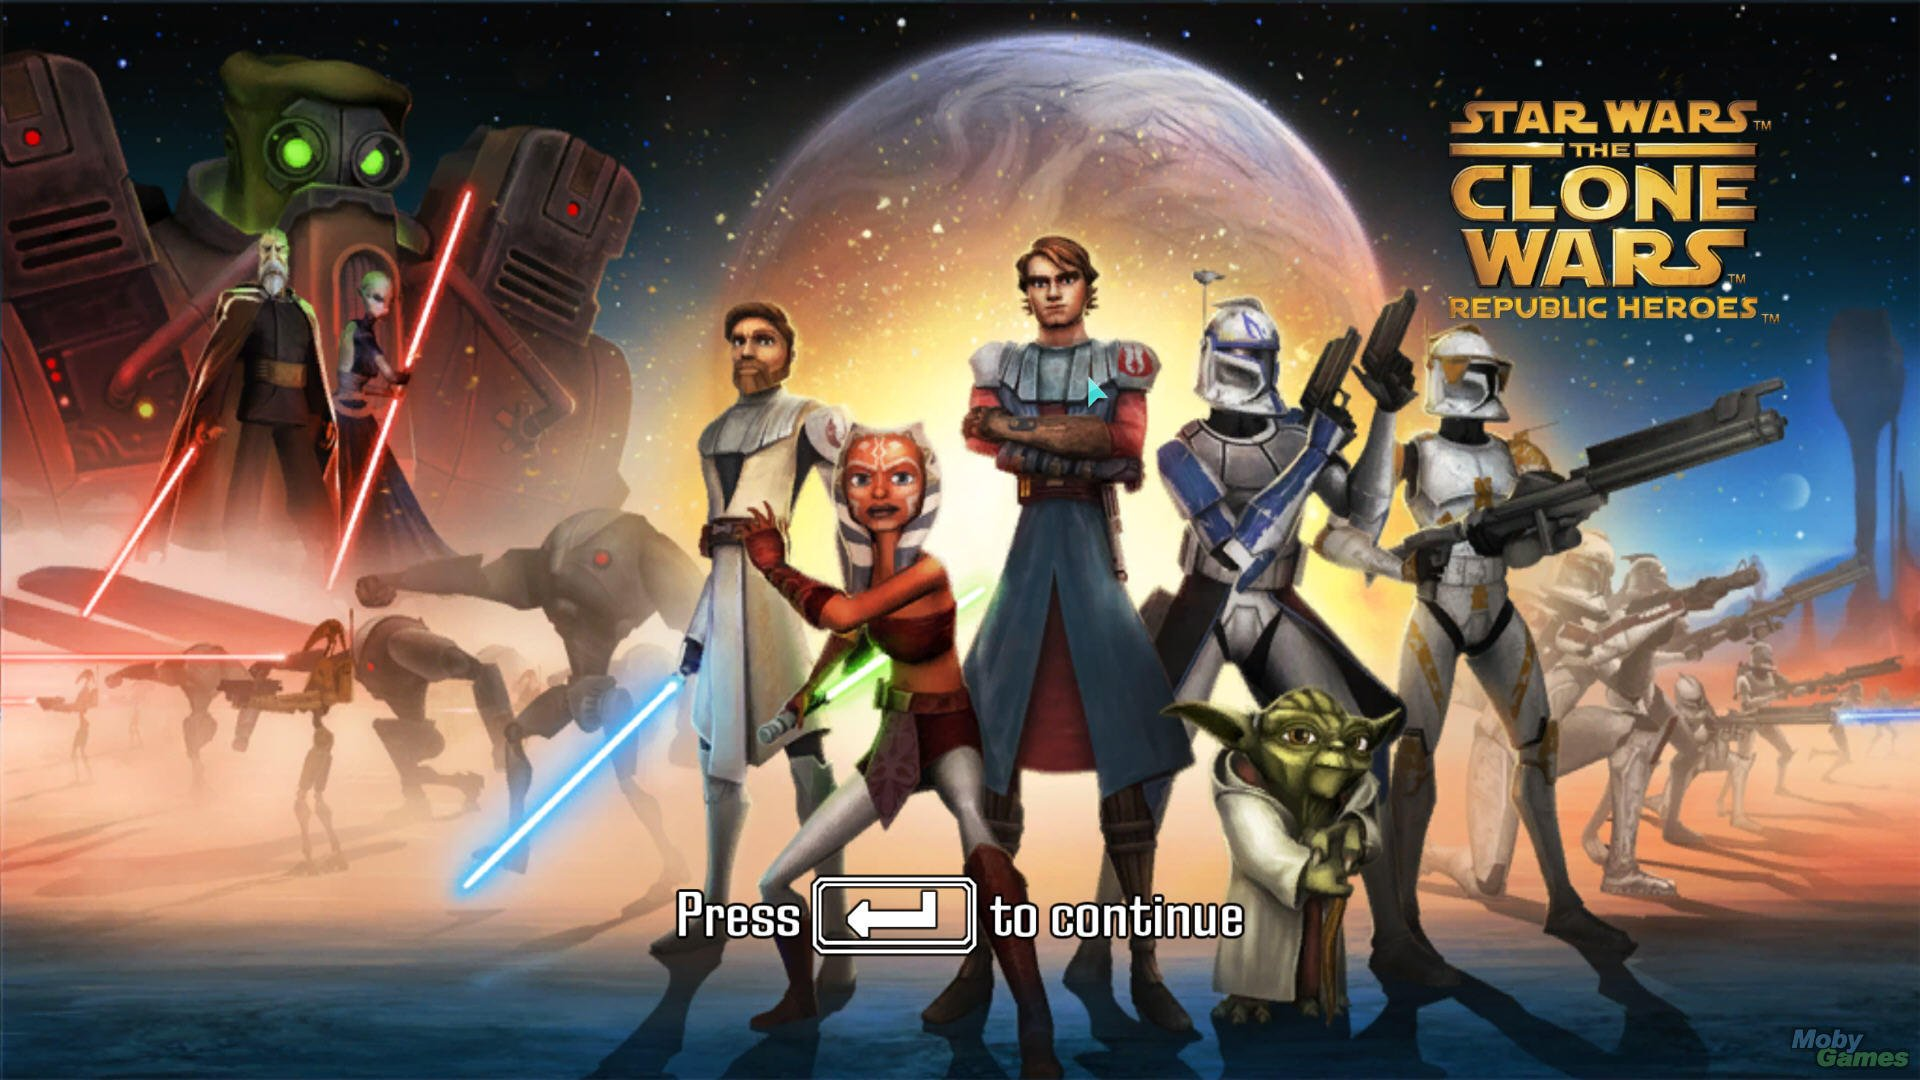 Star wars the clone wars porn games hentia pic